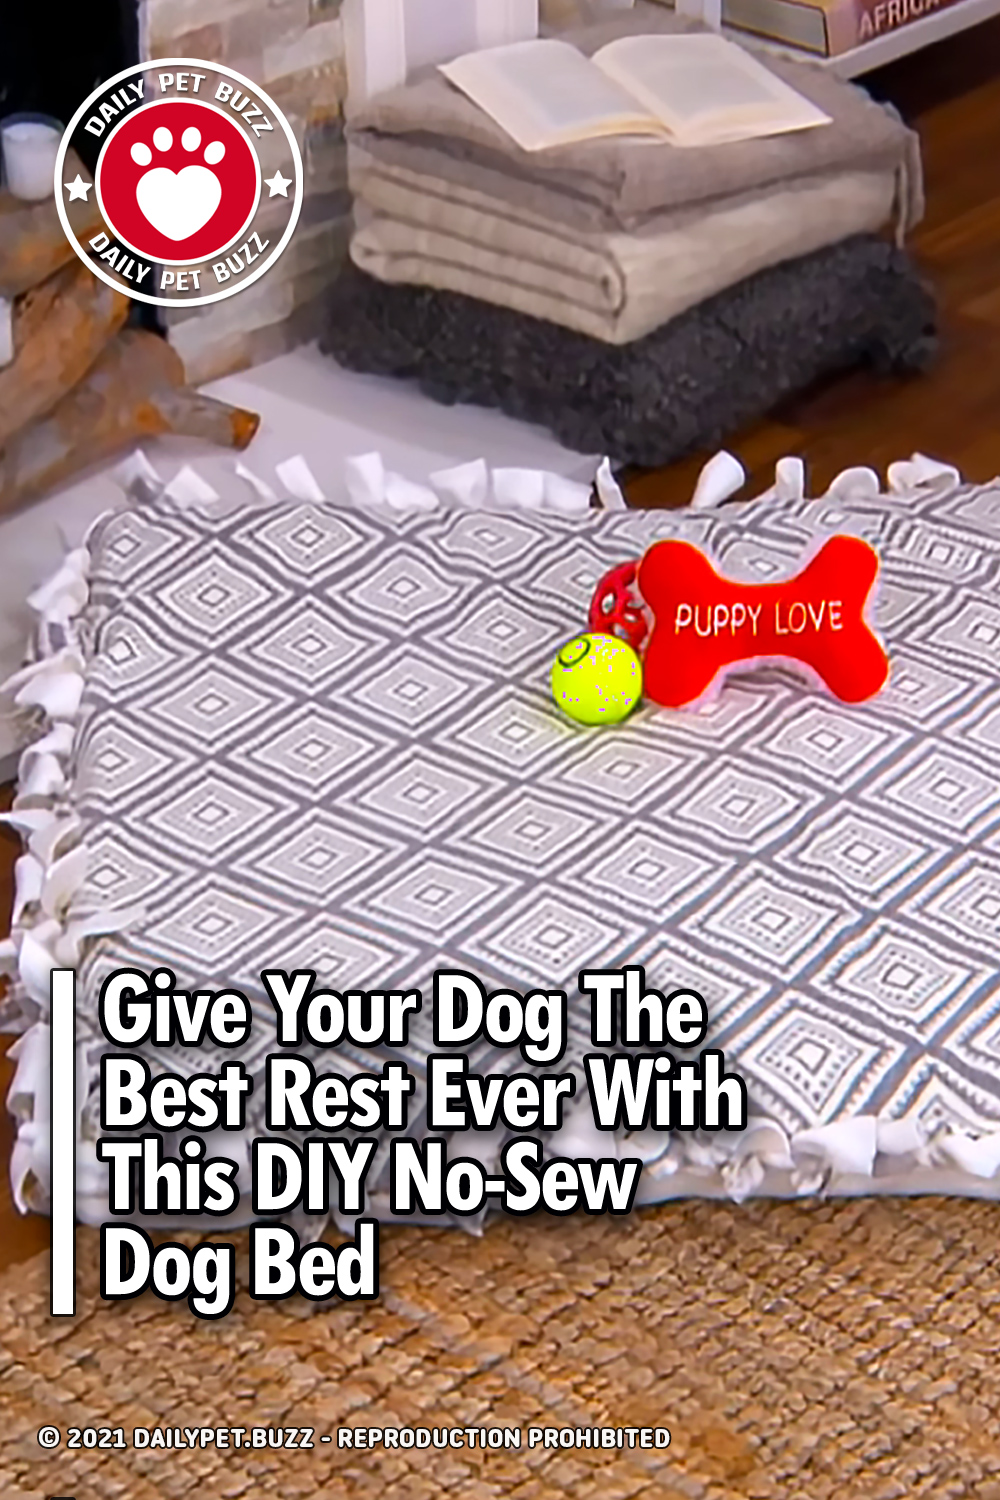 Give Your Dog The Best Rest Ever With This DIY No-Sew Dog Bed